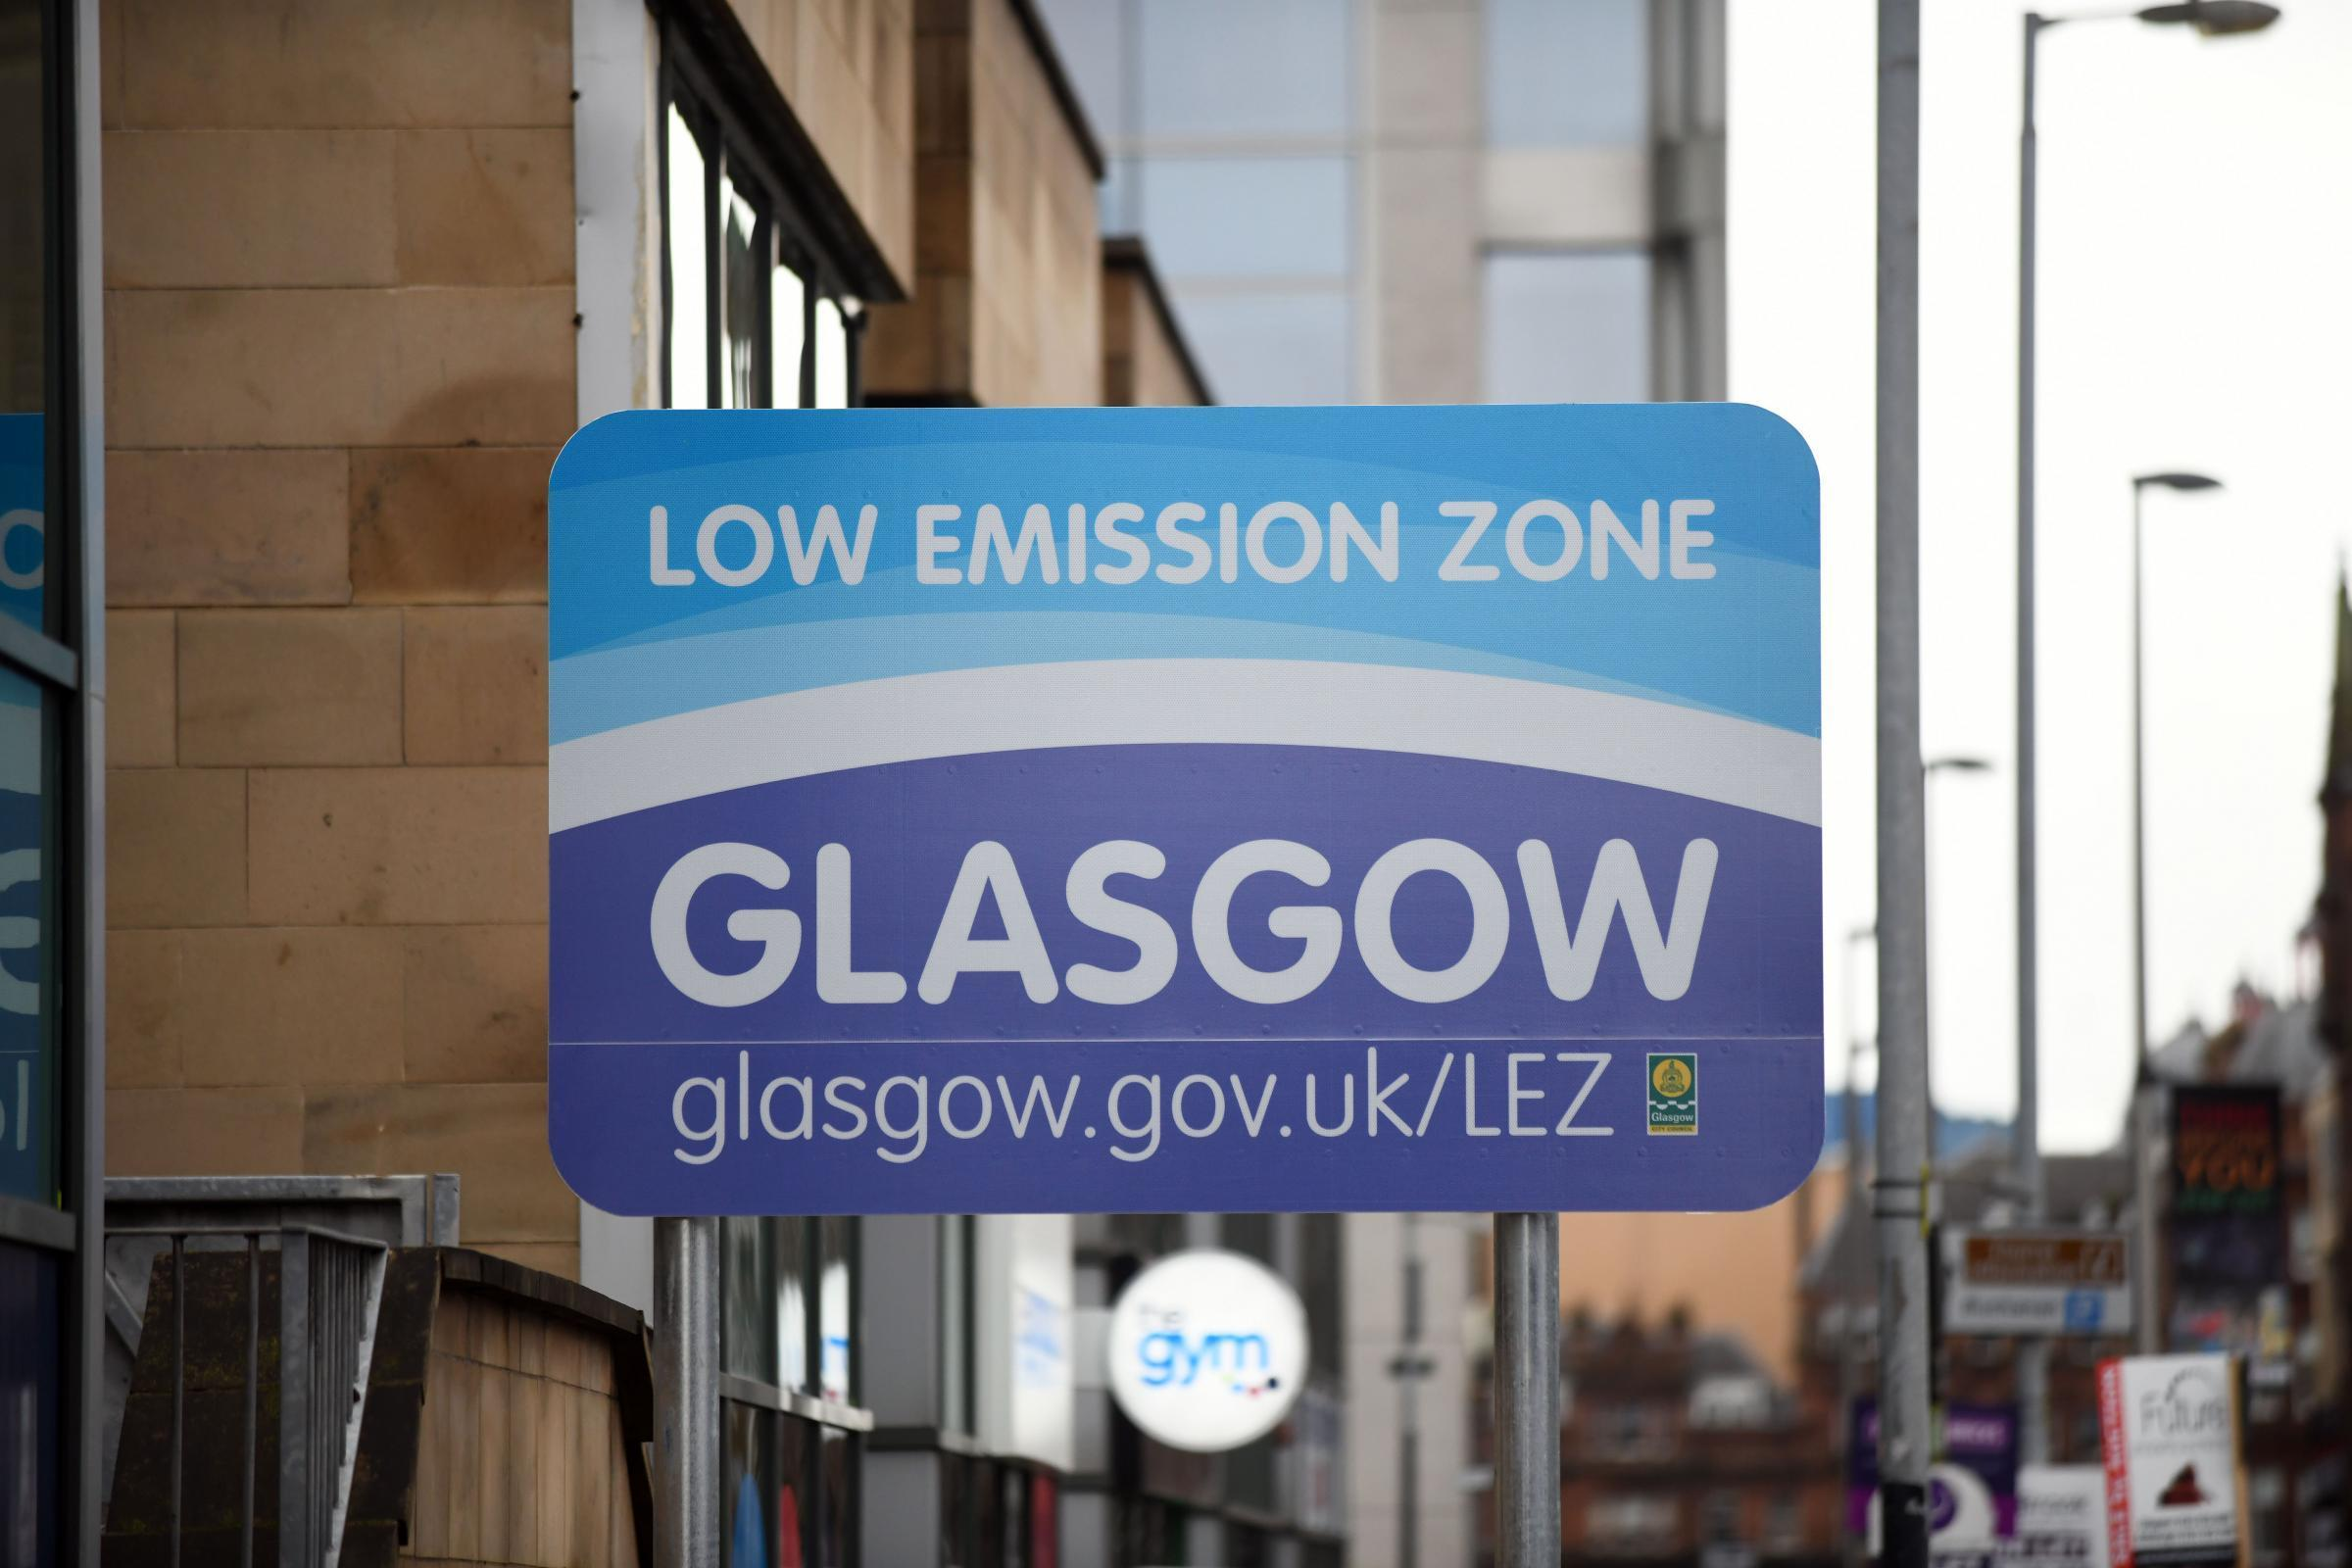 What do you think of Phase 2 of Glasgow LEZ  traffic plans?